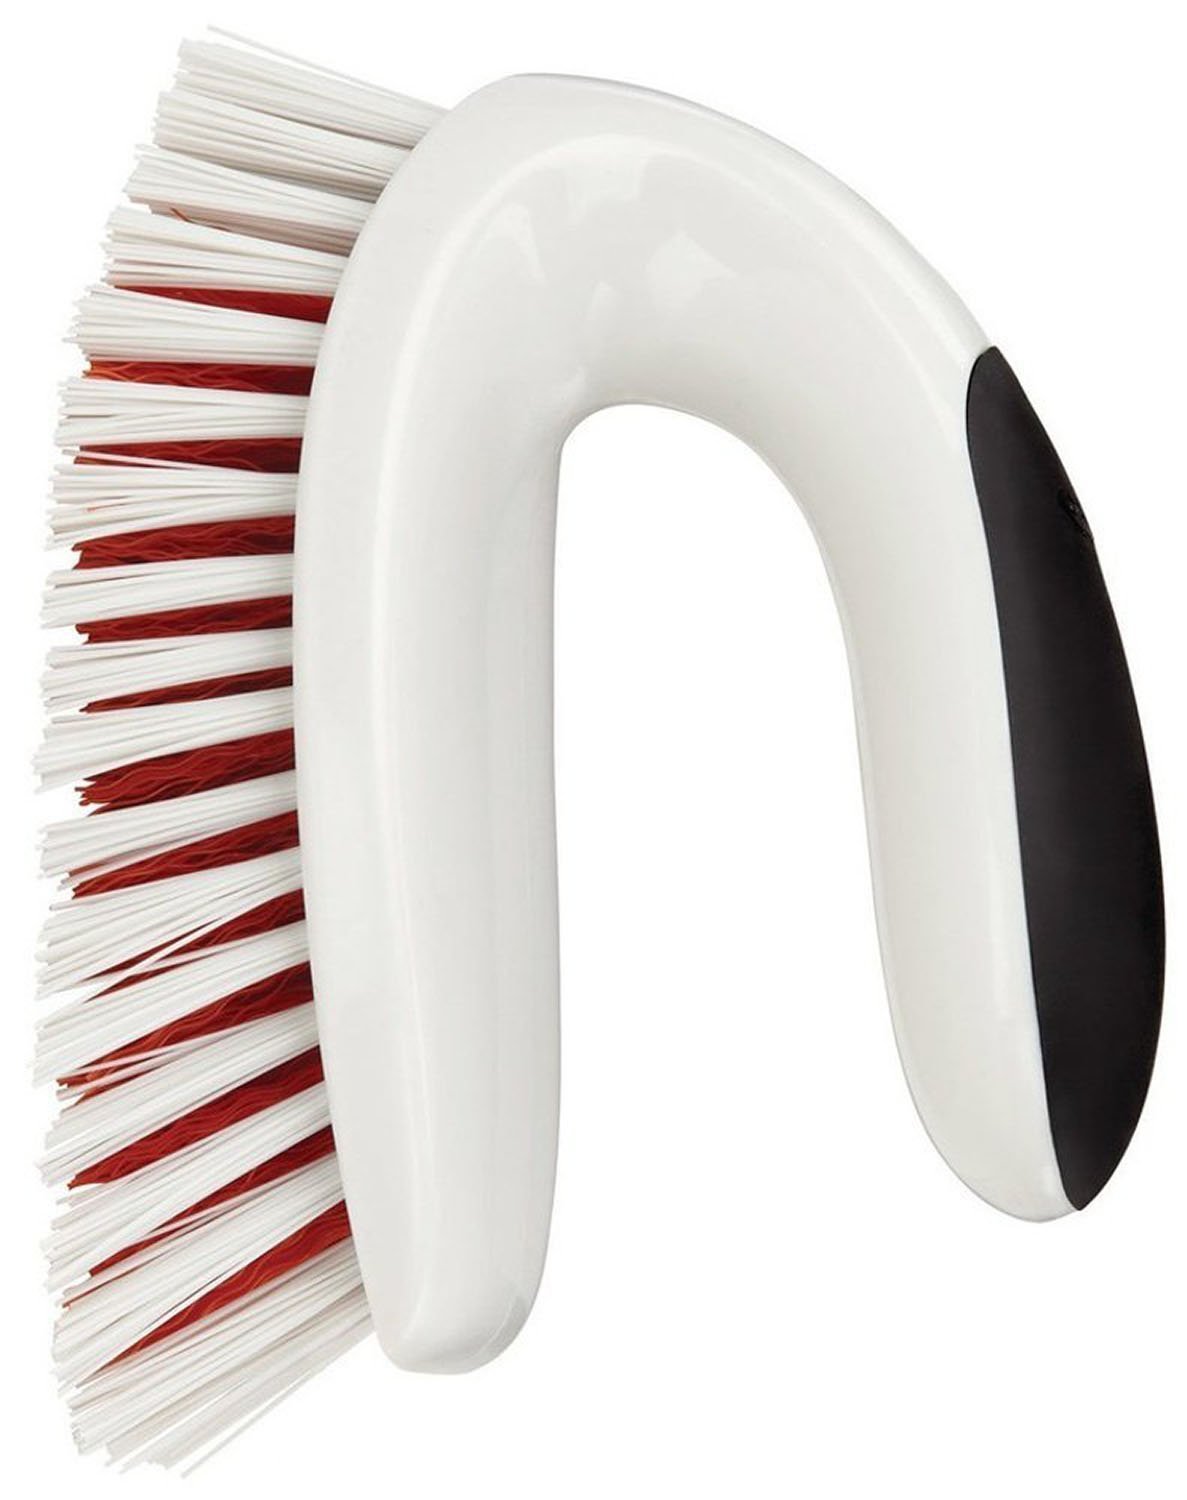 OXO Good Grips All Purpose Scrub Brush